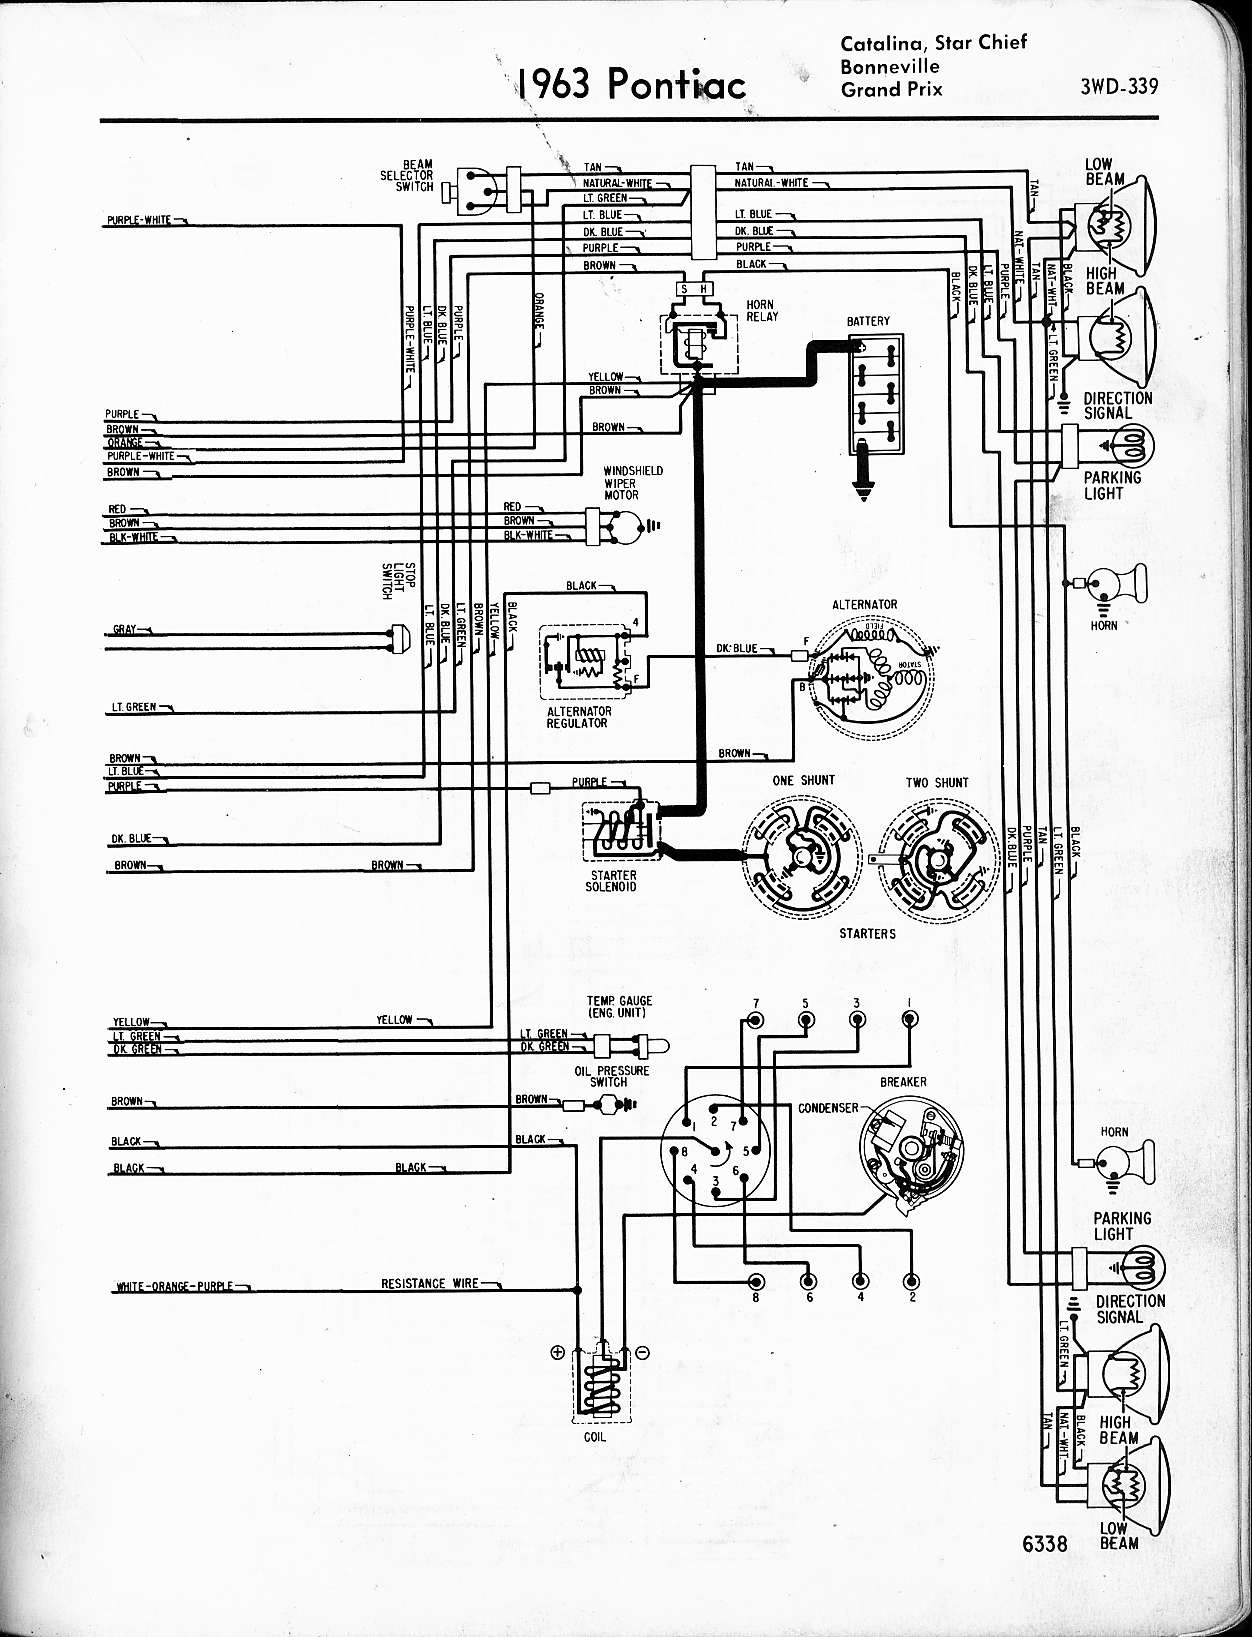 [WRG-2562] 1999 Pontiac Grand Prix Wiring Diagram